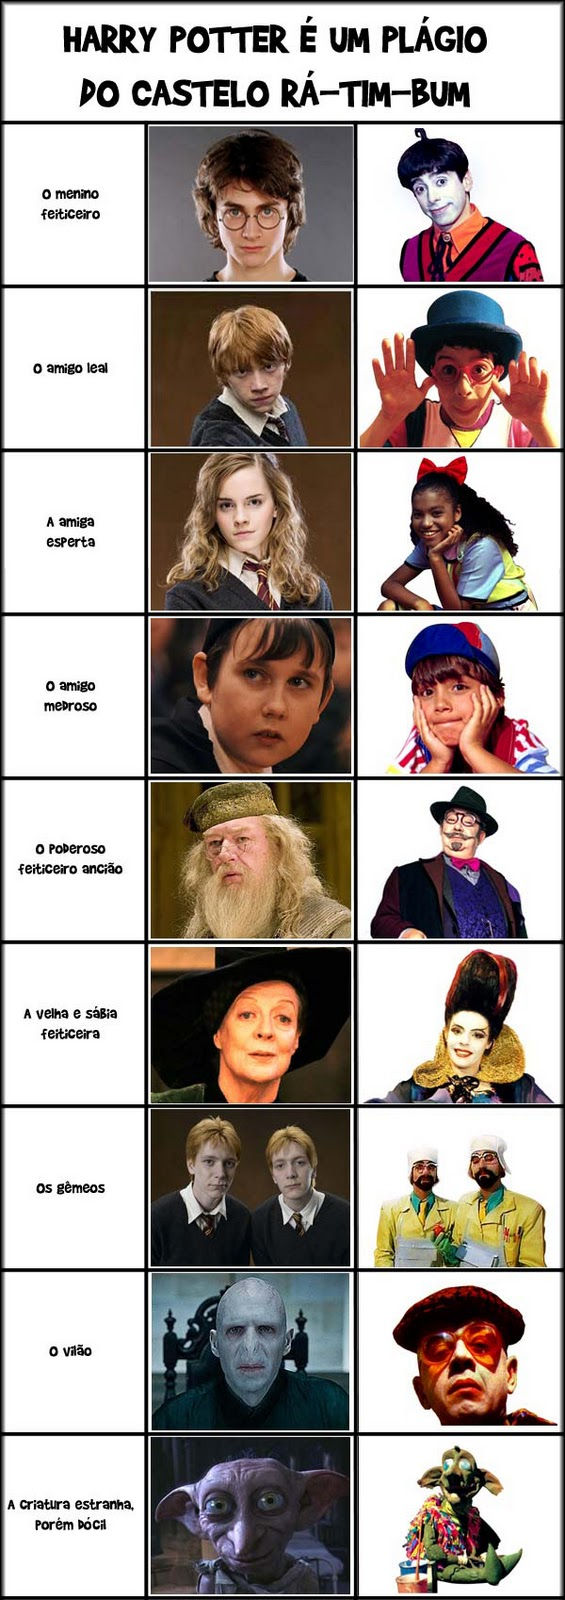 harry potter era plágio